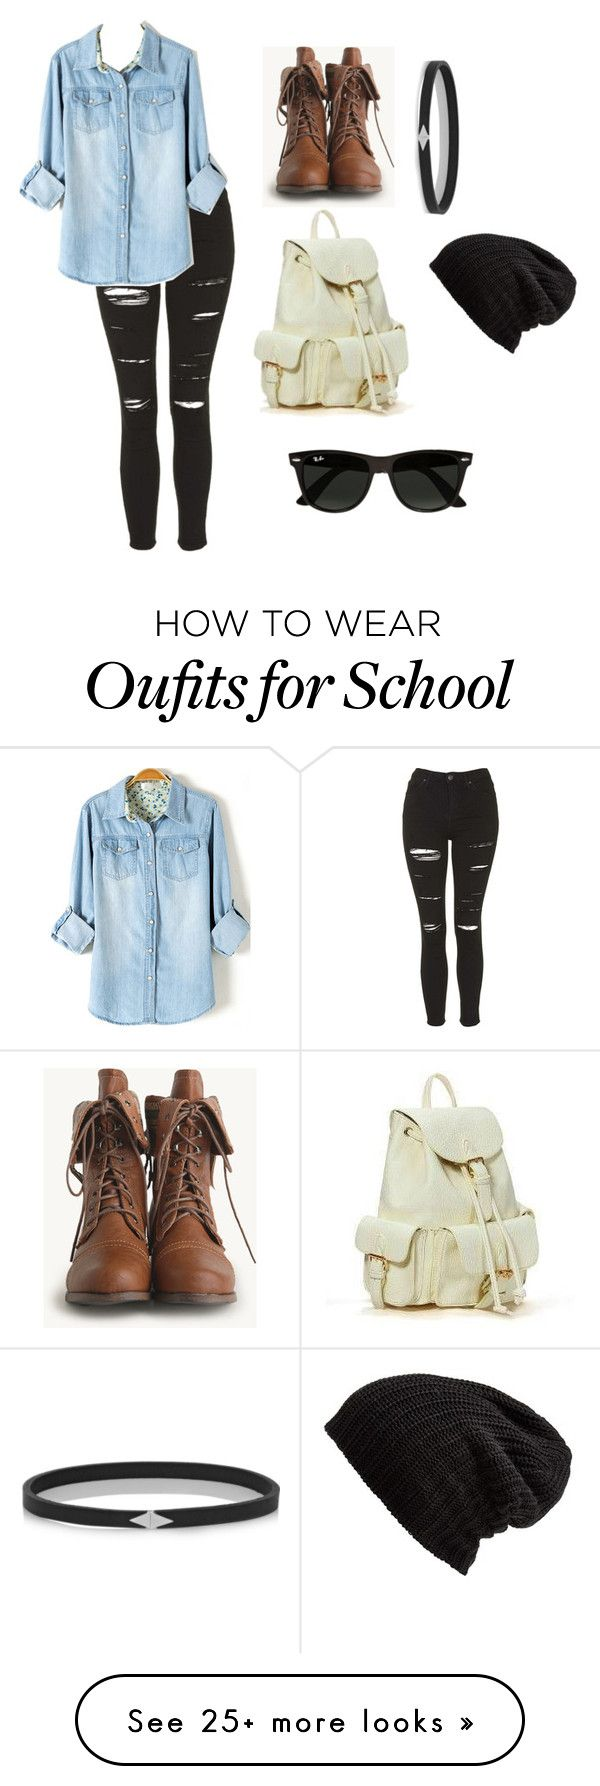 """school"" by ilovescreamqueens13 on Polyvore featuring Topshop, Ray-Ban, Wendy Nichol and Free People. Adorei tudo menos a toca ,não ficaria tâo bom assim."